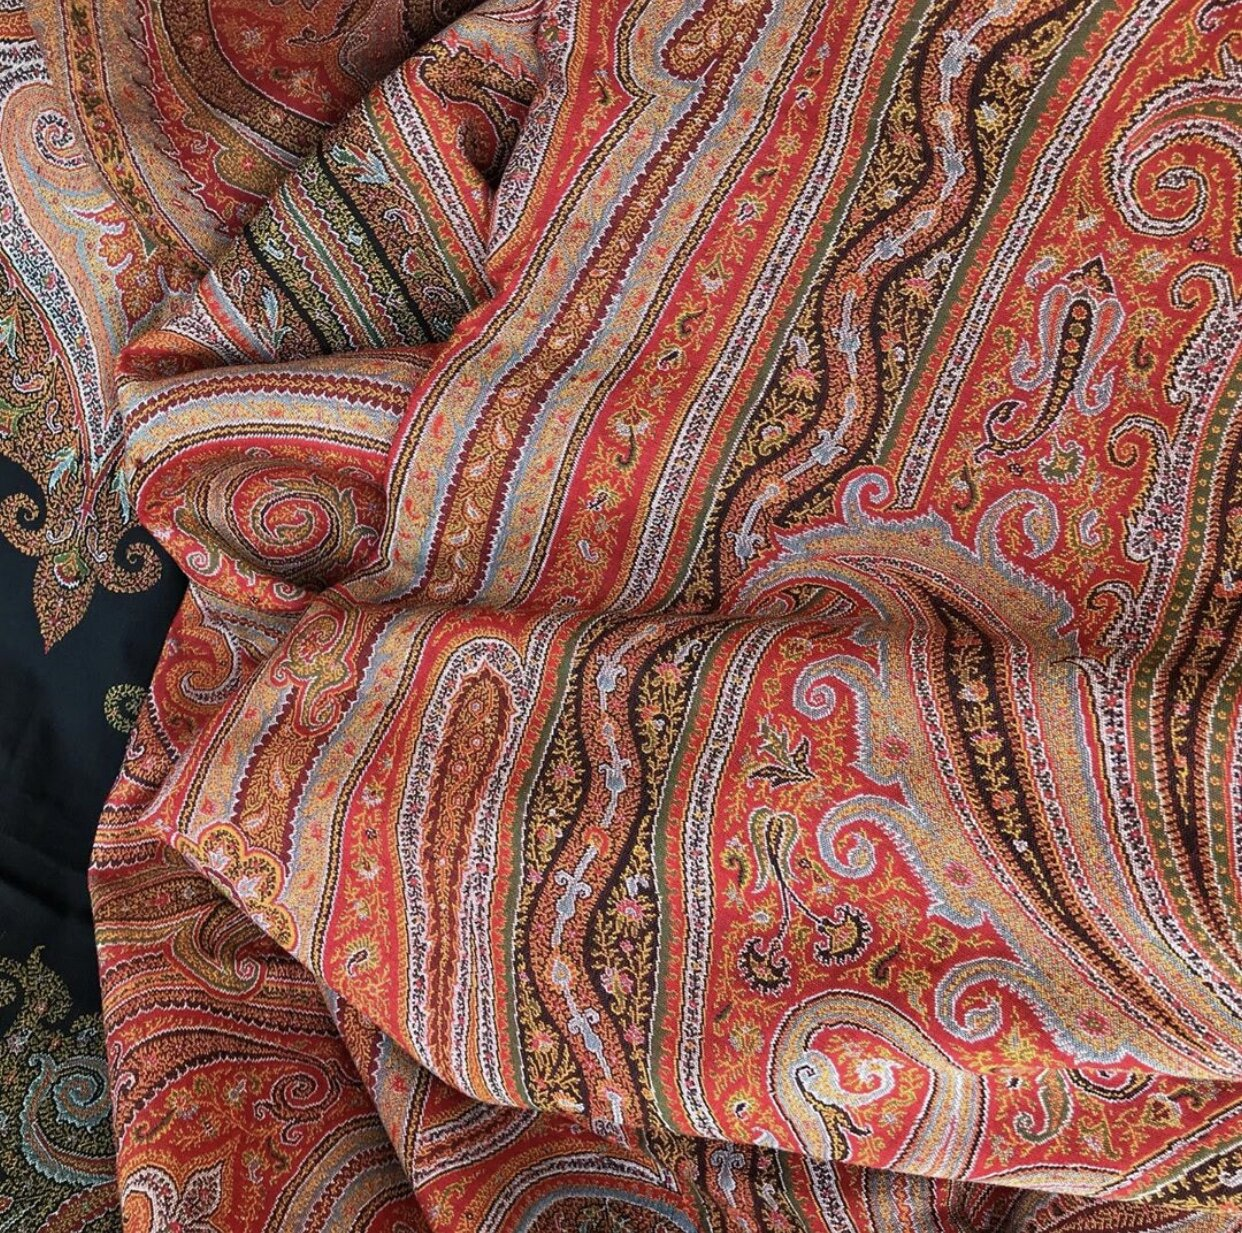 19th century paisley shawl